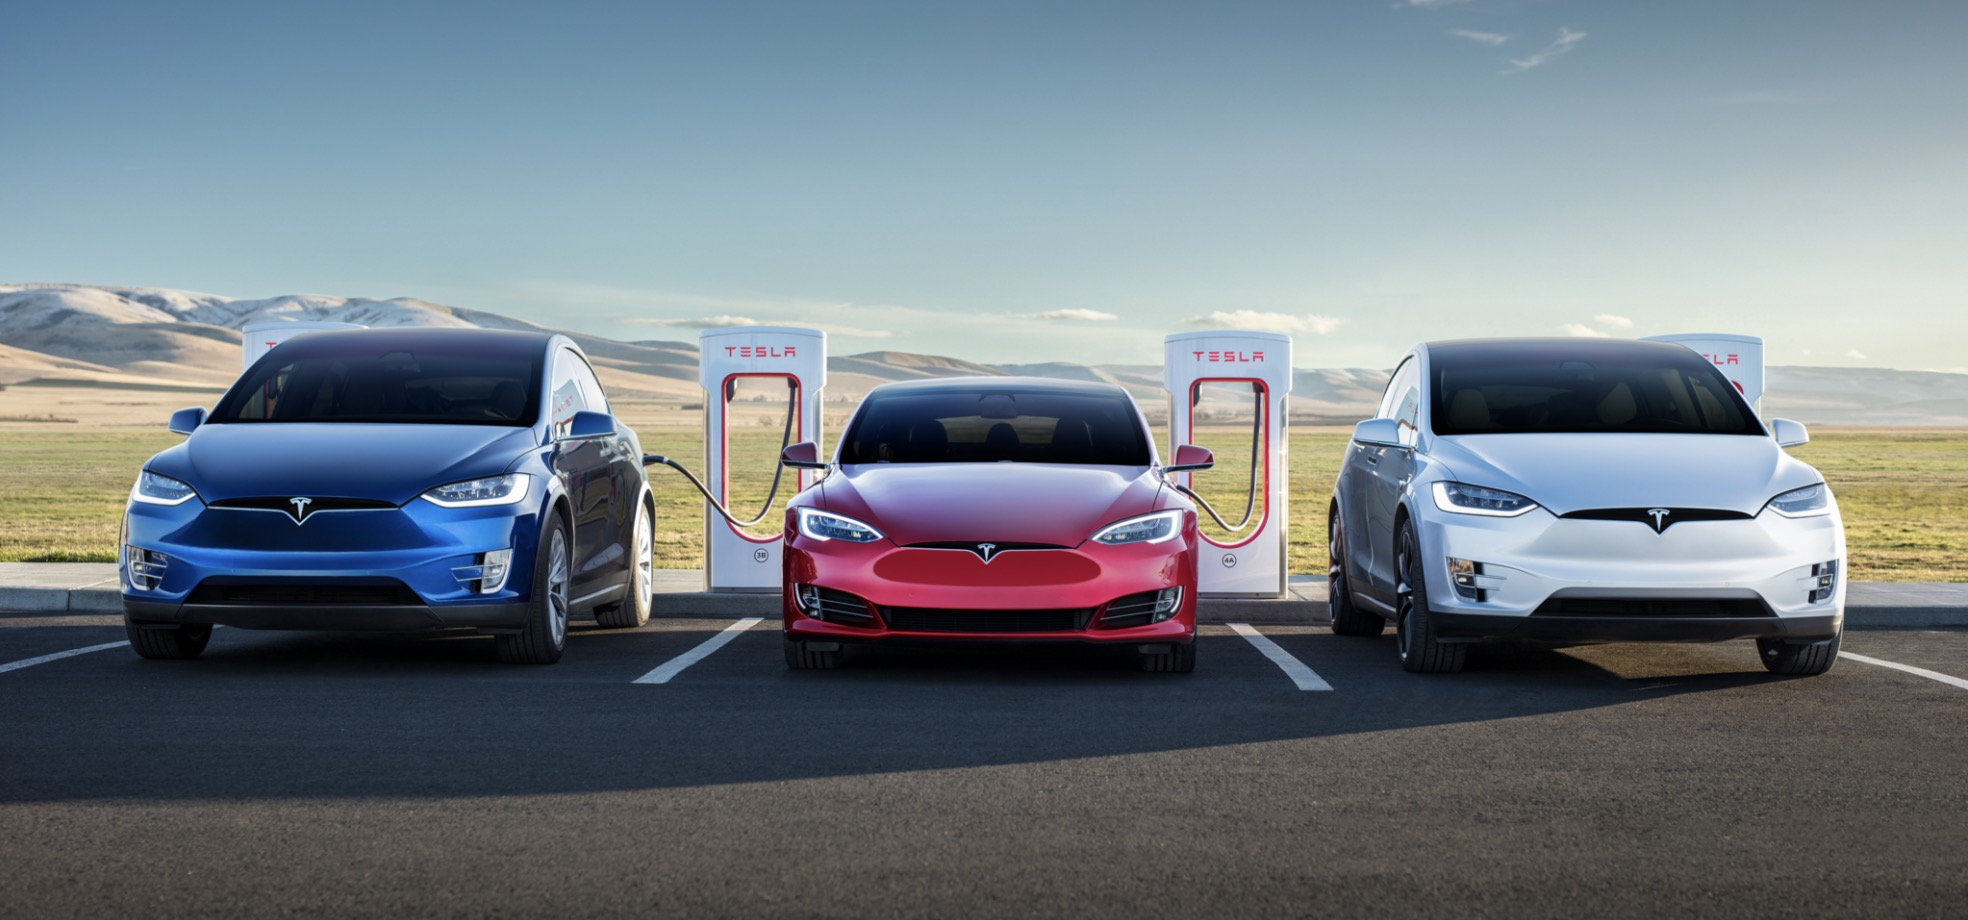 Tesla And Gm Could Get Back Federal Tax Credit For Another 400 000 Electric Cars With Bi P Bill